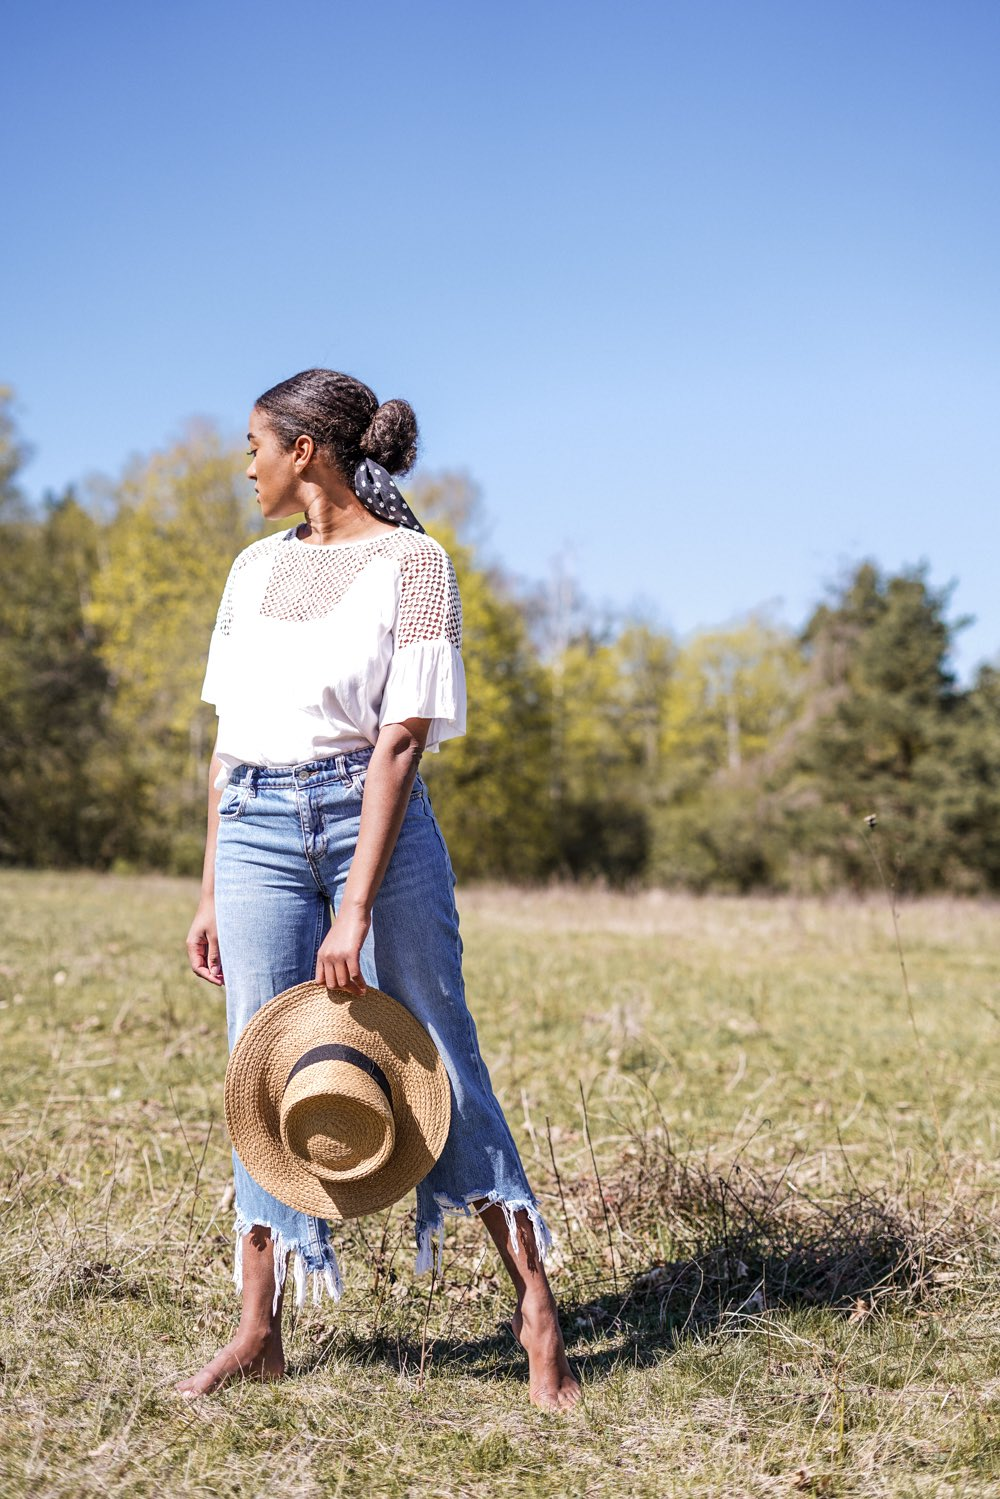 Favourite Outfit: Styling Staple Pieces for Spring